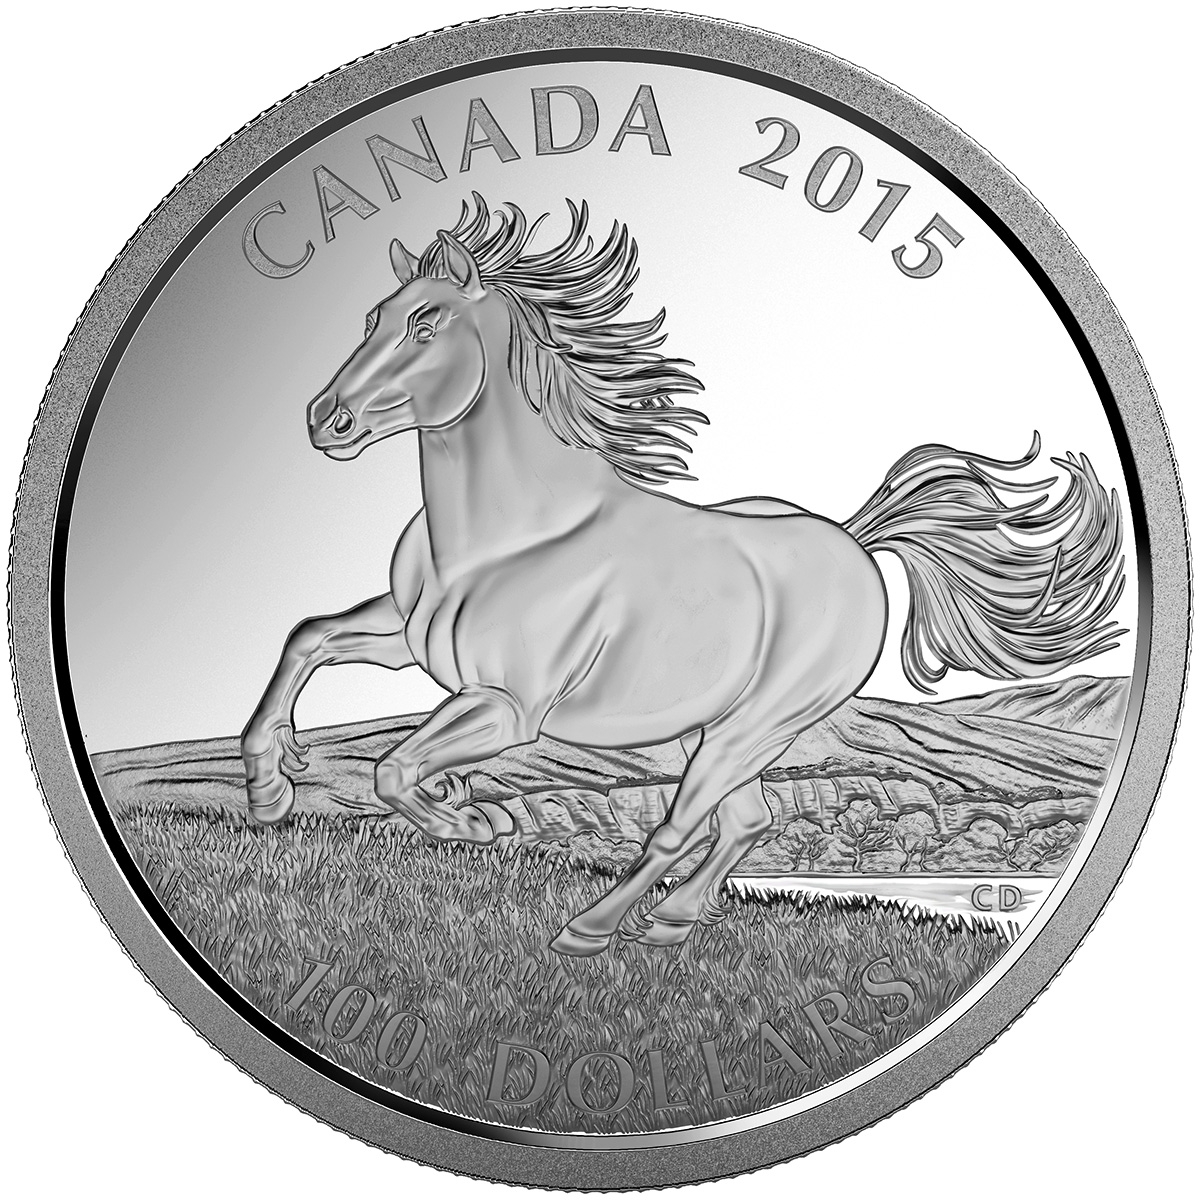 CANADA 2015 $100 Fine Silver Commemorative Coin - Wildlife In Motion - Canadian Horse - $100 for $100 - #5 In Series